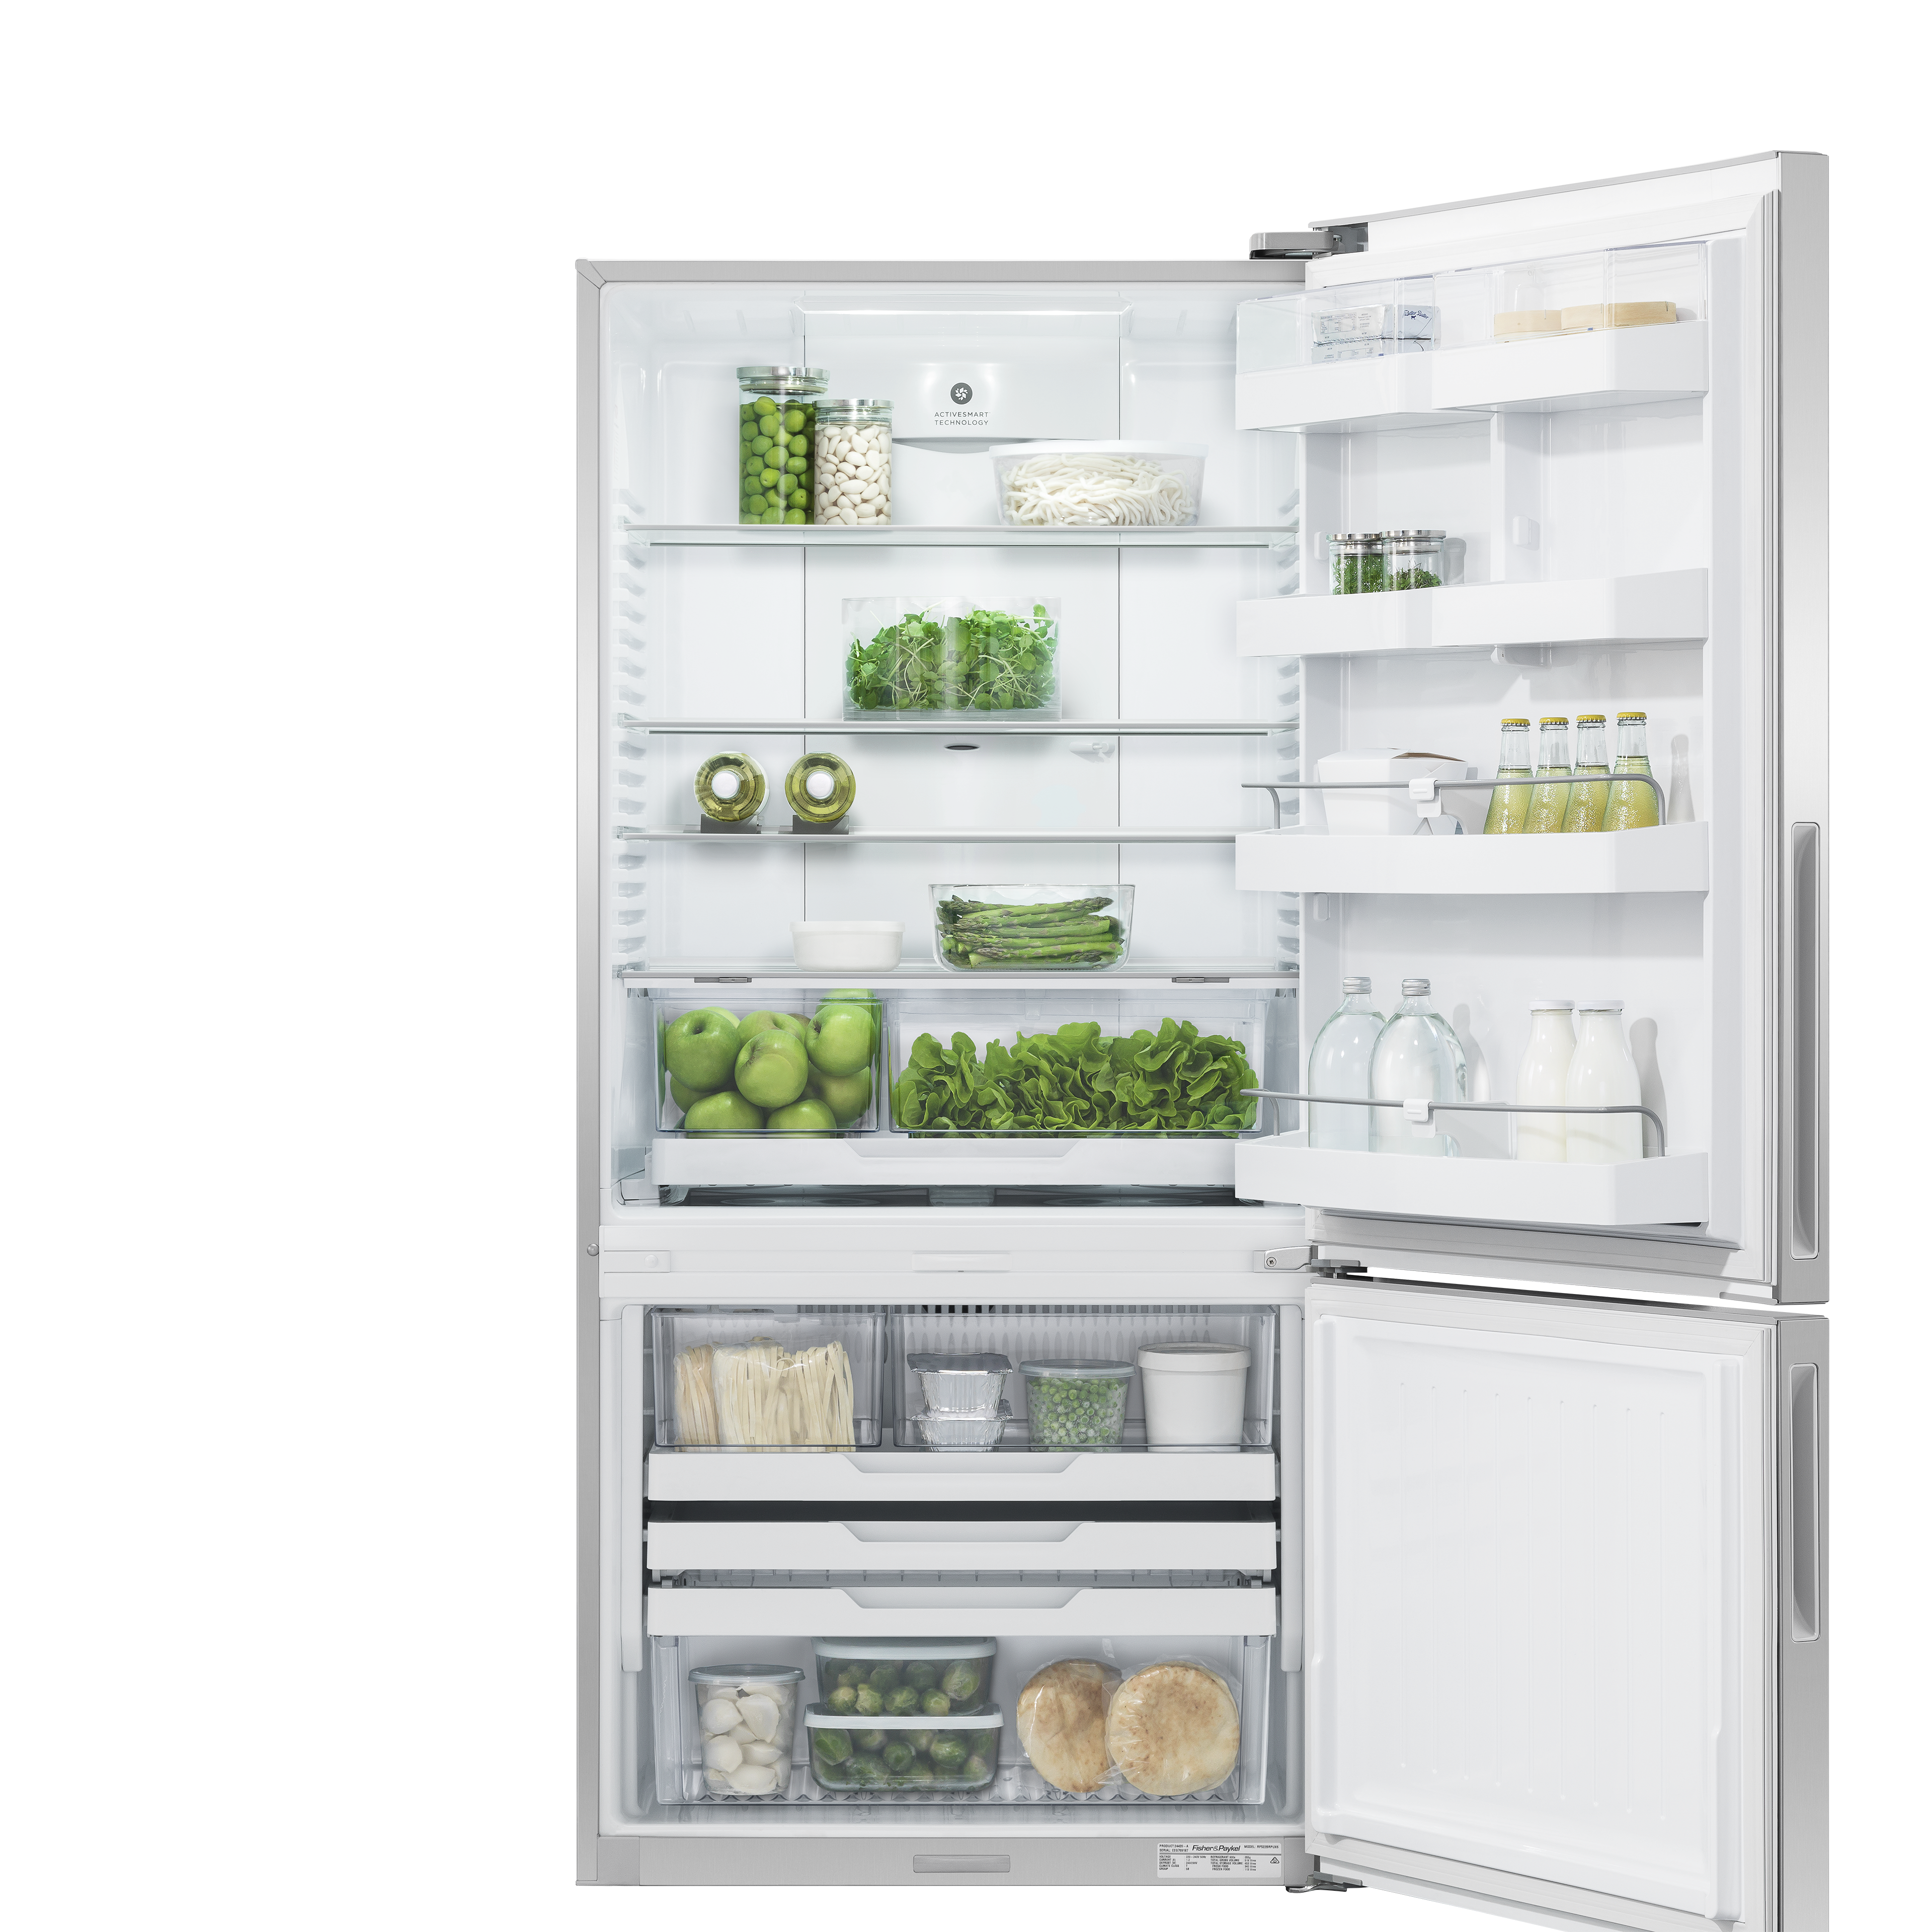 Model: RF170BRPX6N   Fisher and Paykel Counter Depth Refrigerator 17.5 cu ft